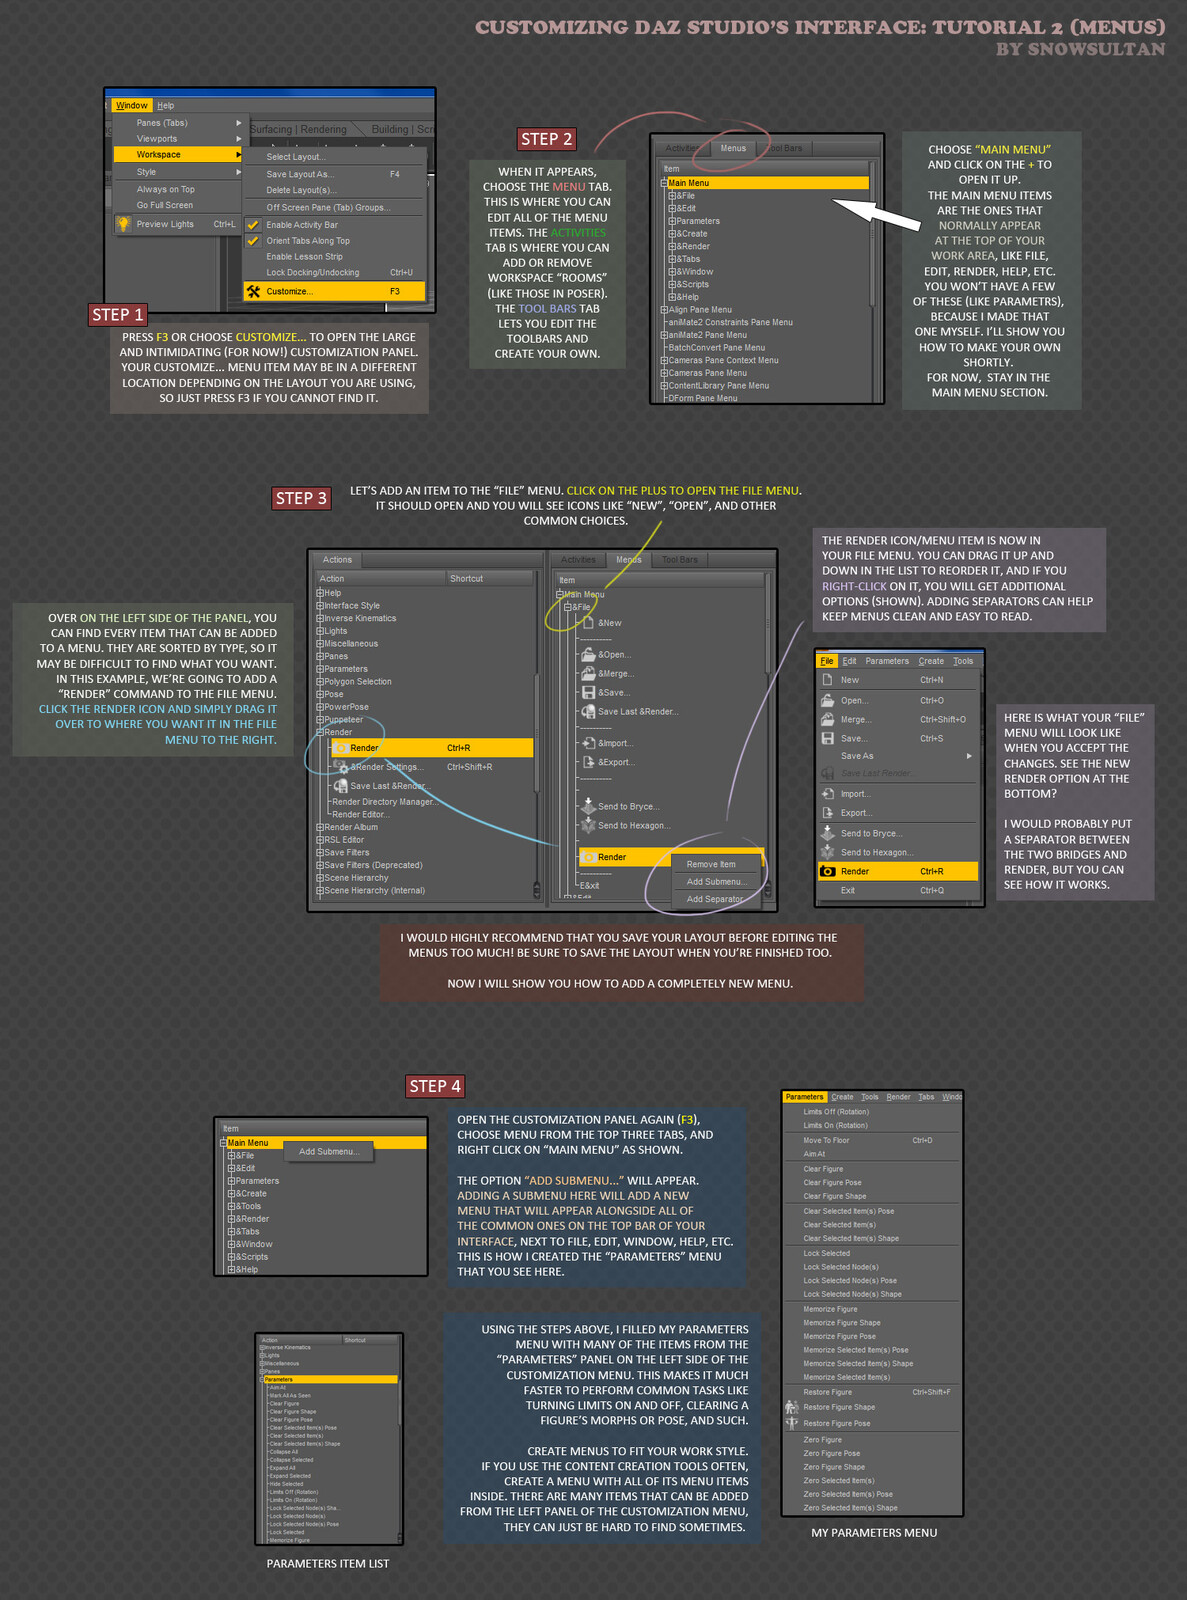 DAZ Studio's interface is *highly* customizable, I've really done a number on my own.  Just save often!